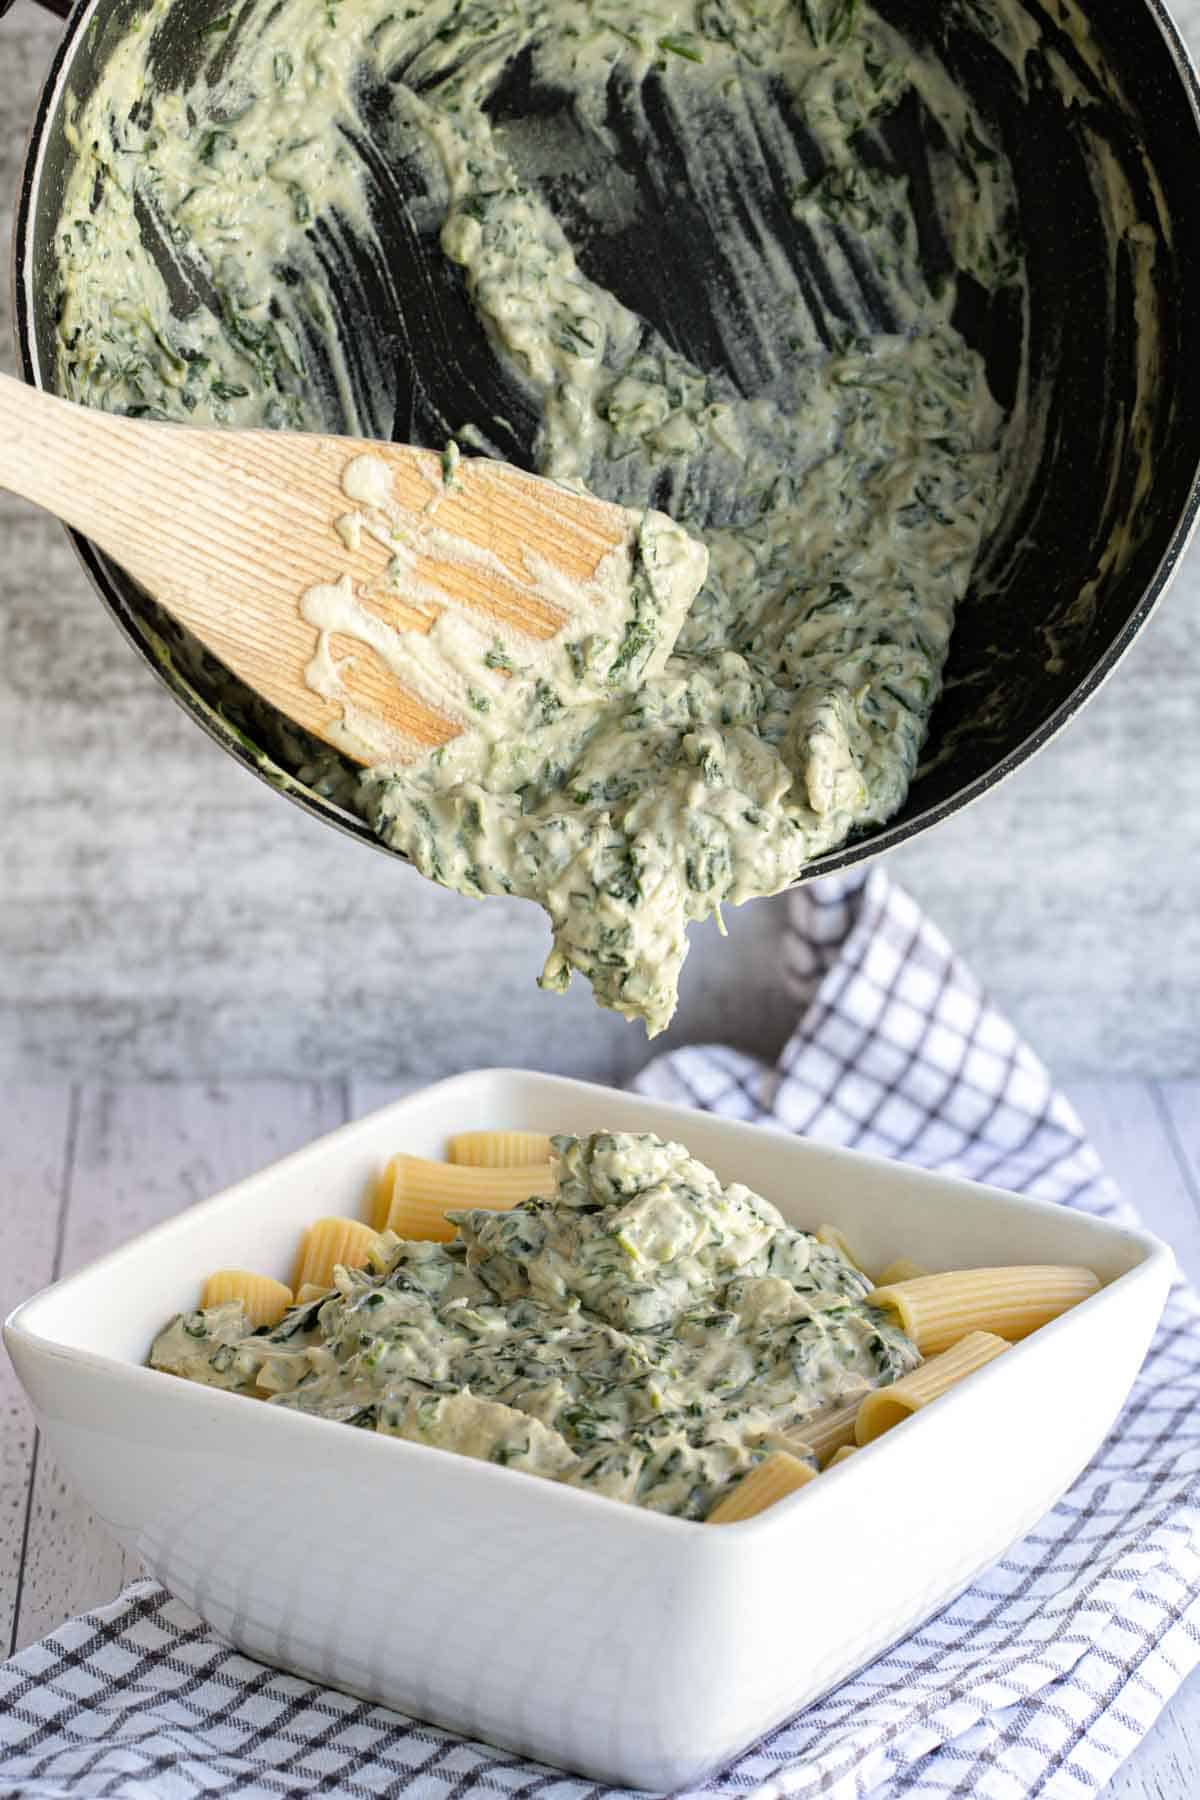 Pouring spinach artichoke sauce over pasta.